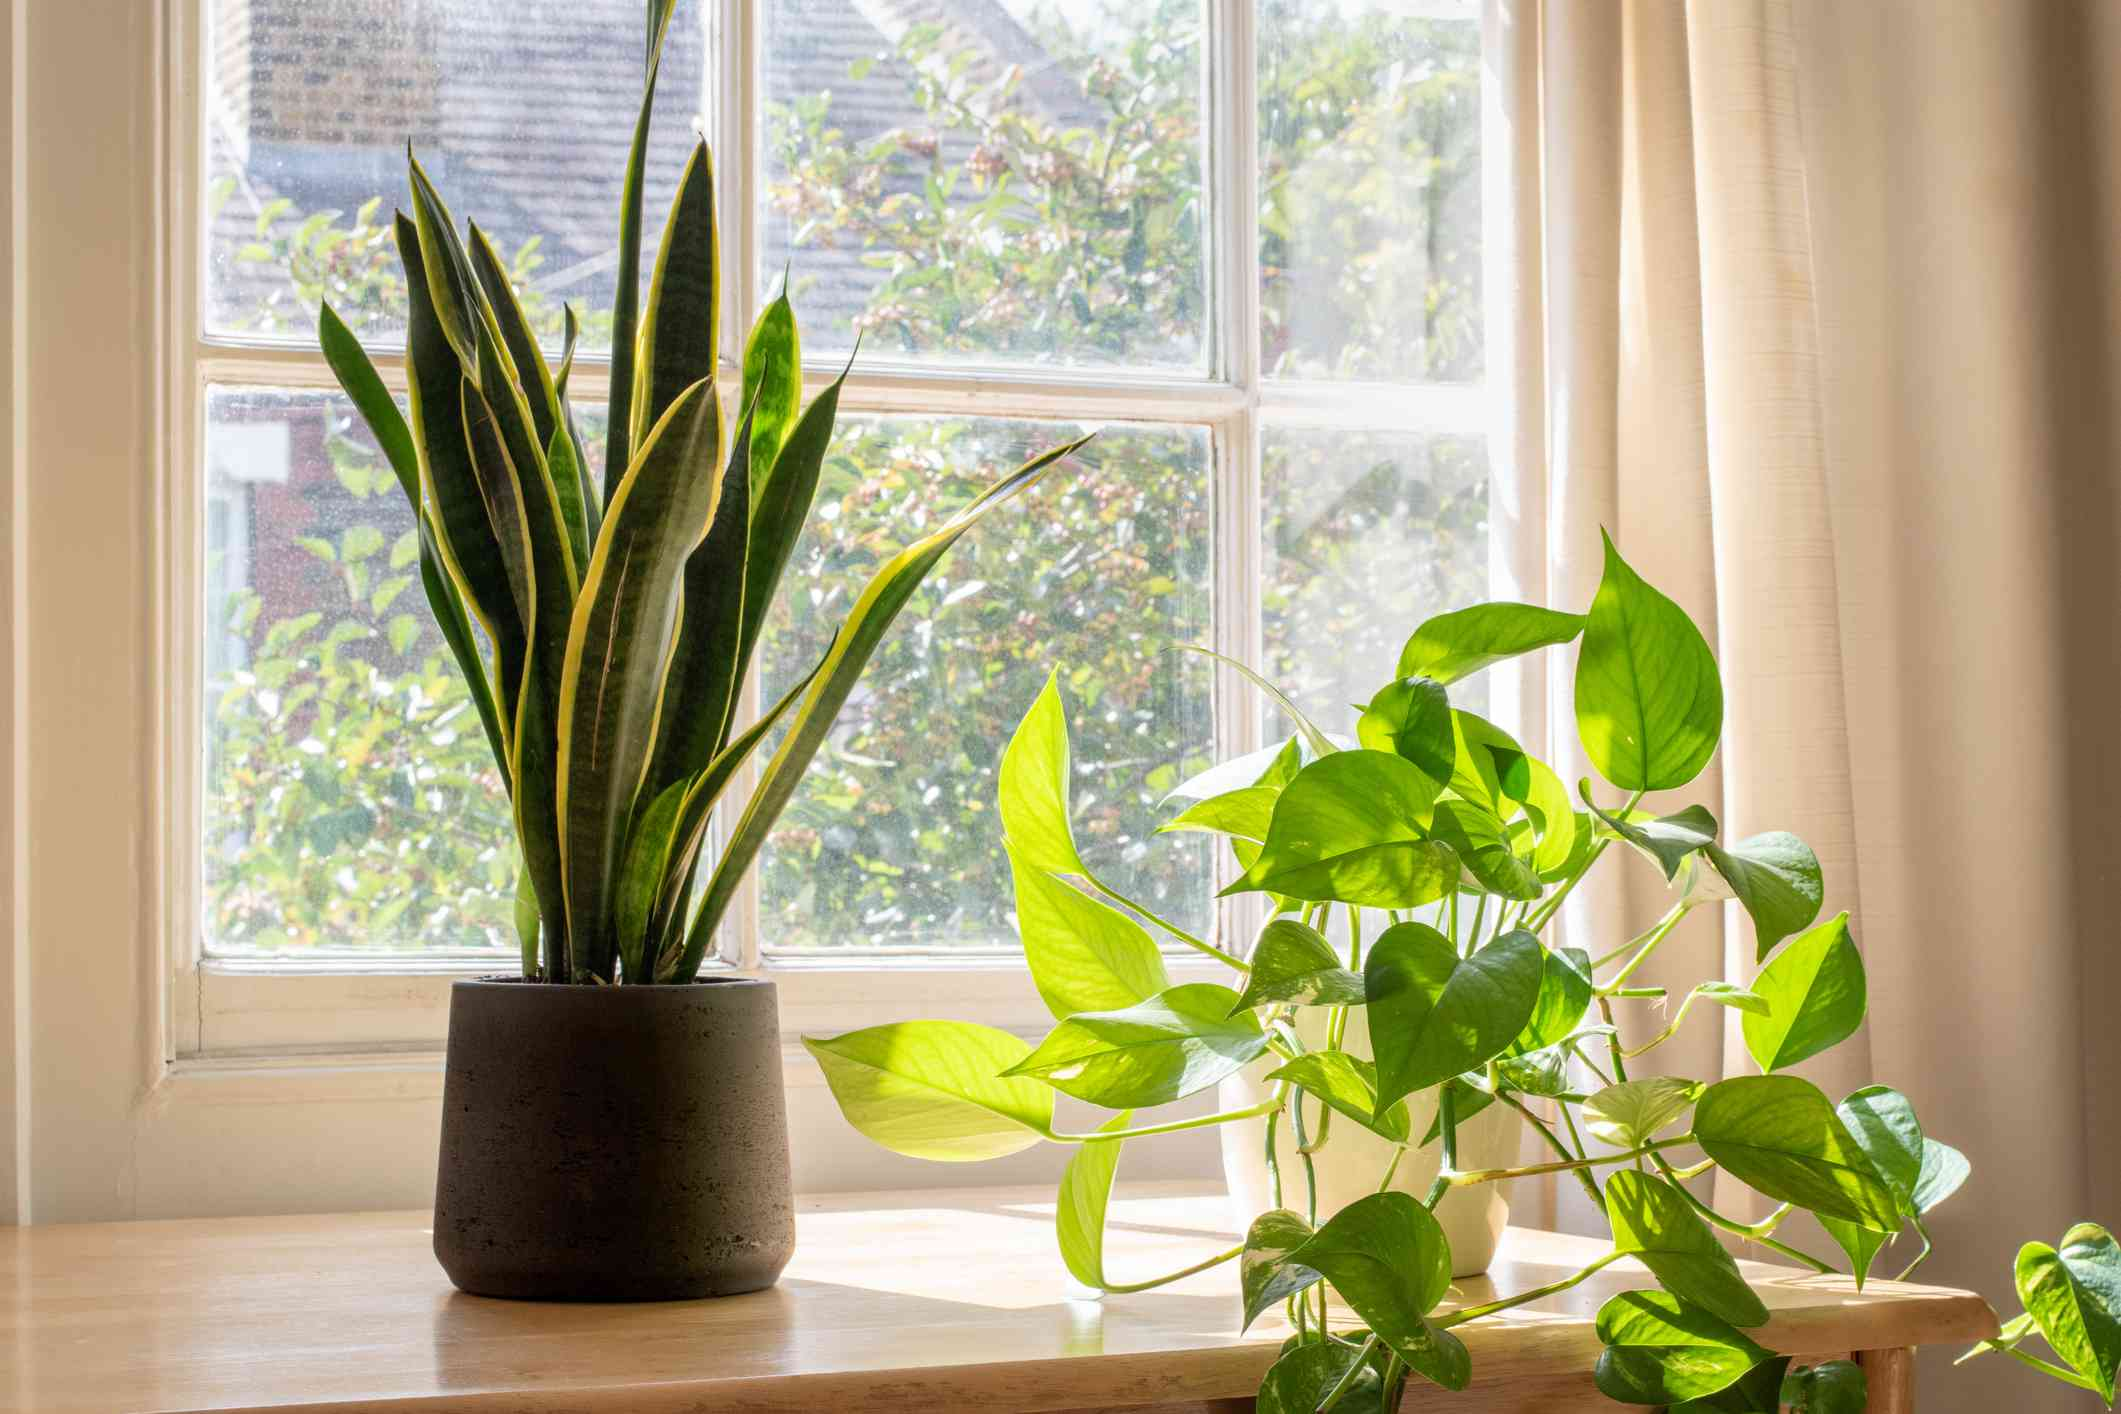 Snake plant with golden pothos in a bright window